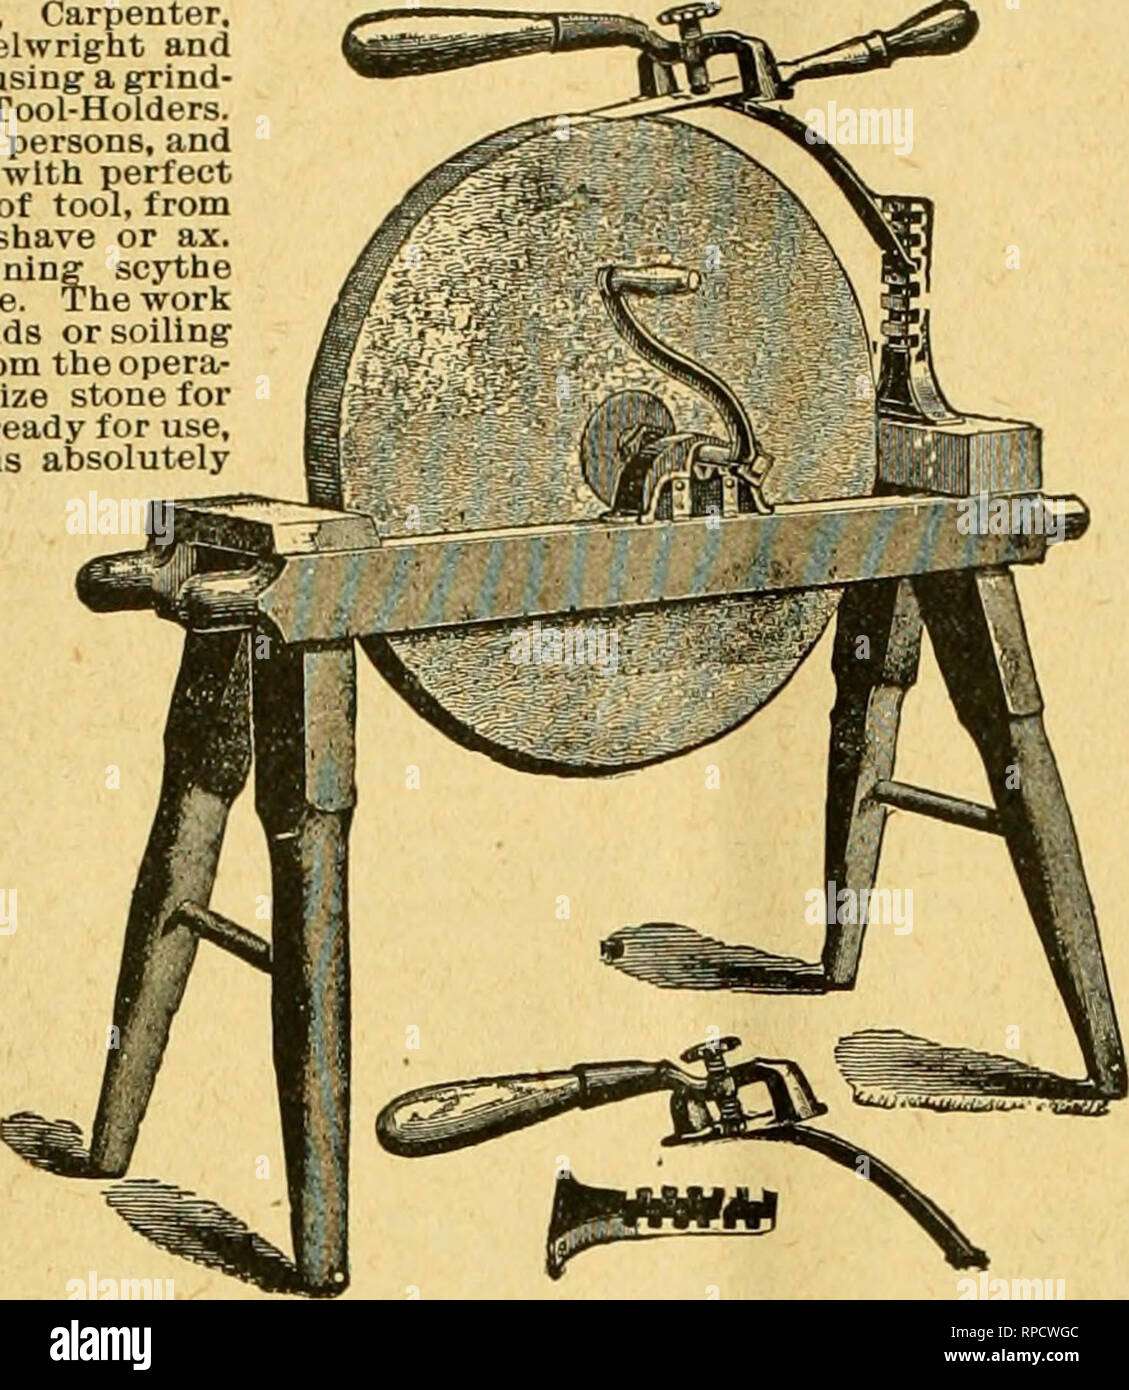 . American bee journal. Bee culture; Bees. 398 AMERICAN BEE JOURNAL. June 21, 1900. A HANDY TOOL-HOLDER! Sent by Express, for f 1.50 ; or with tlie Bee Journal one year—both for $2.00. Every Manufacturer, Miller, Carpenter. Cabinet Maker, Machinist. Wheelwright and Quarryman. Farmer, or any one using a grind- stone, should have one of these Tool-Holders. One boy can do the work of two persons, and grind much faster, easier and with perfect accuracy. Will hold any kind of tool, from the smallest chisel to a draw shave or ax. Extra attachment for sharpening scythe blades included in tlie above p - Stock Image